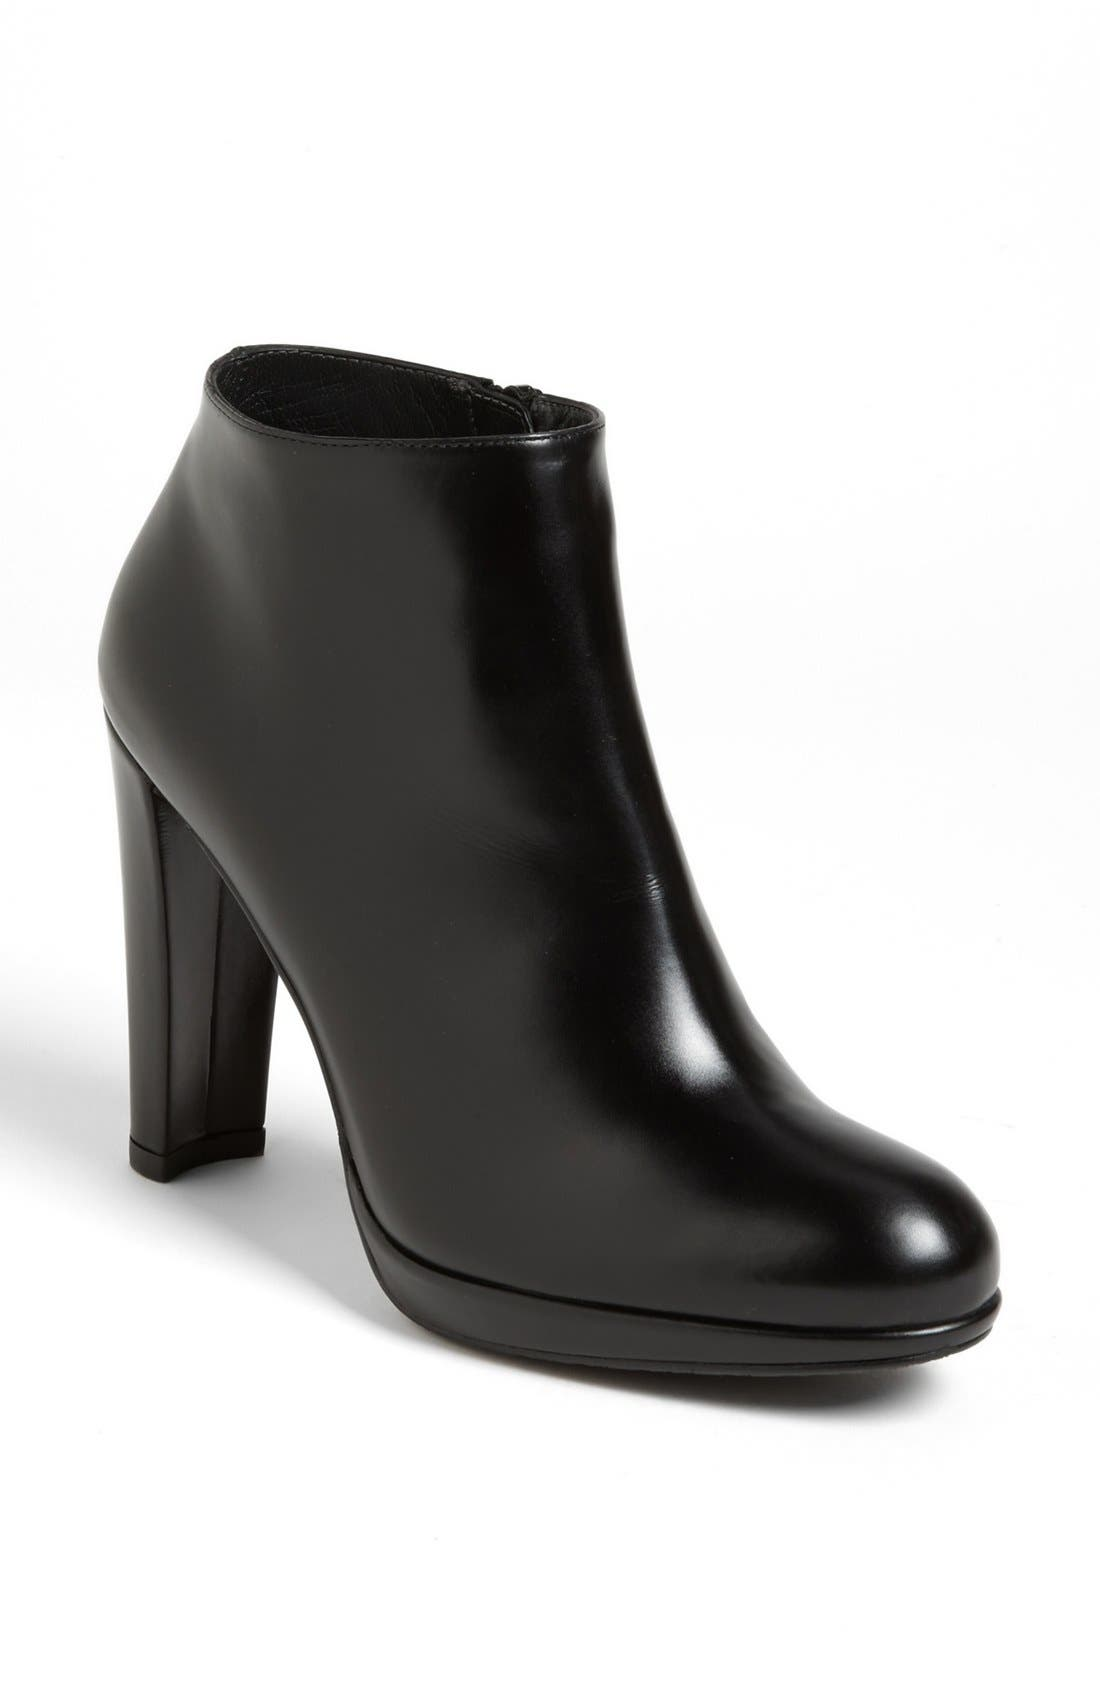 STUART WEITZMAN 'Gran' Boot, Main, color, 006